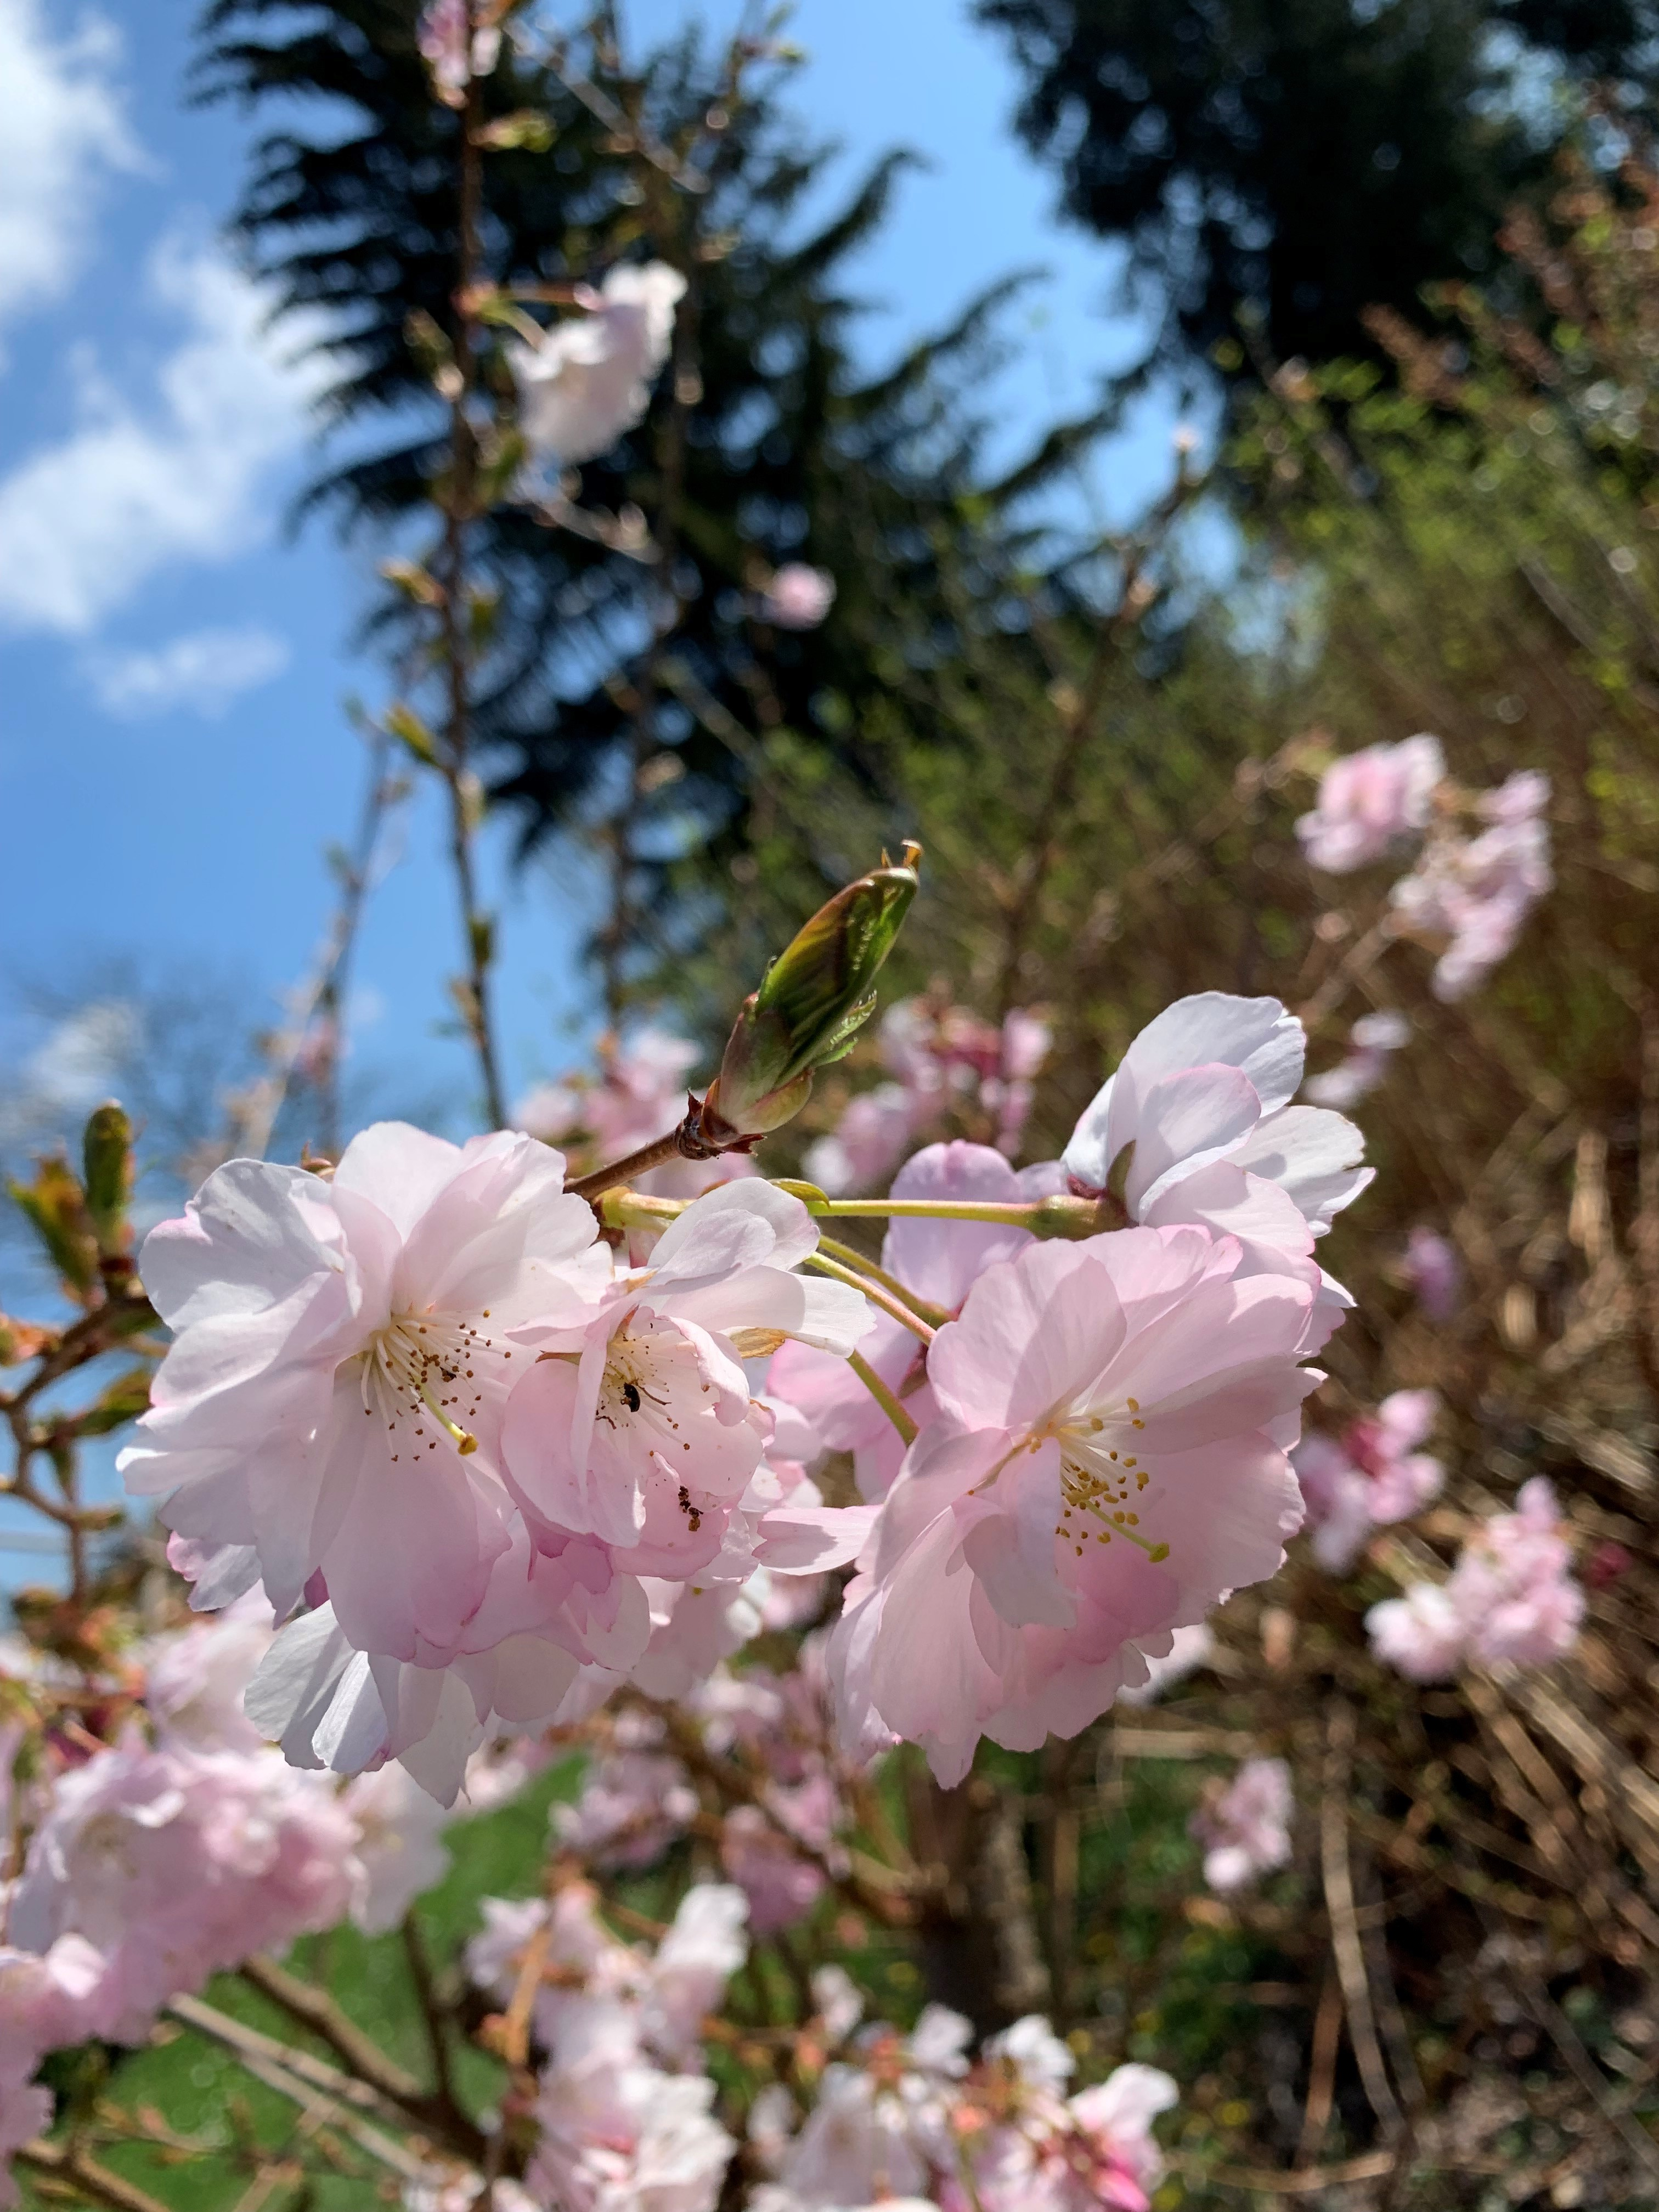 Close-up of a single-flowered pastel pink cherry blossom, with almost all flowers in bloom, and a couple of green buds